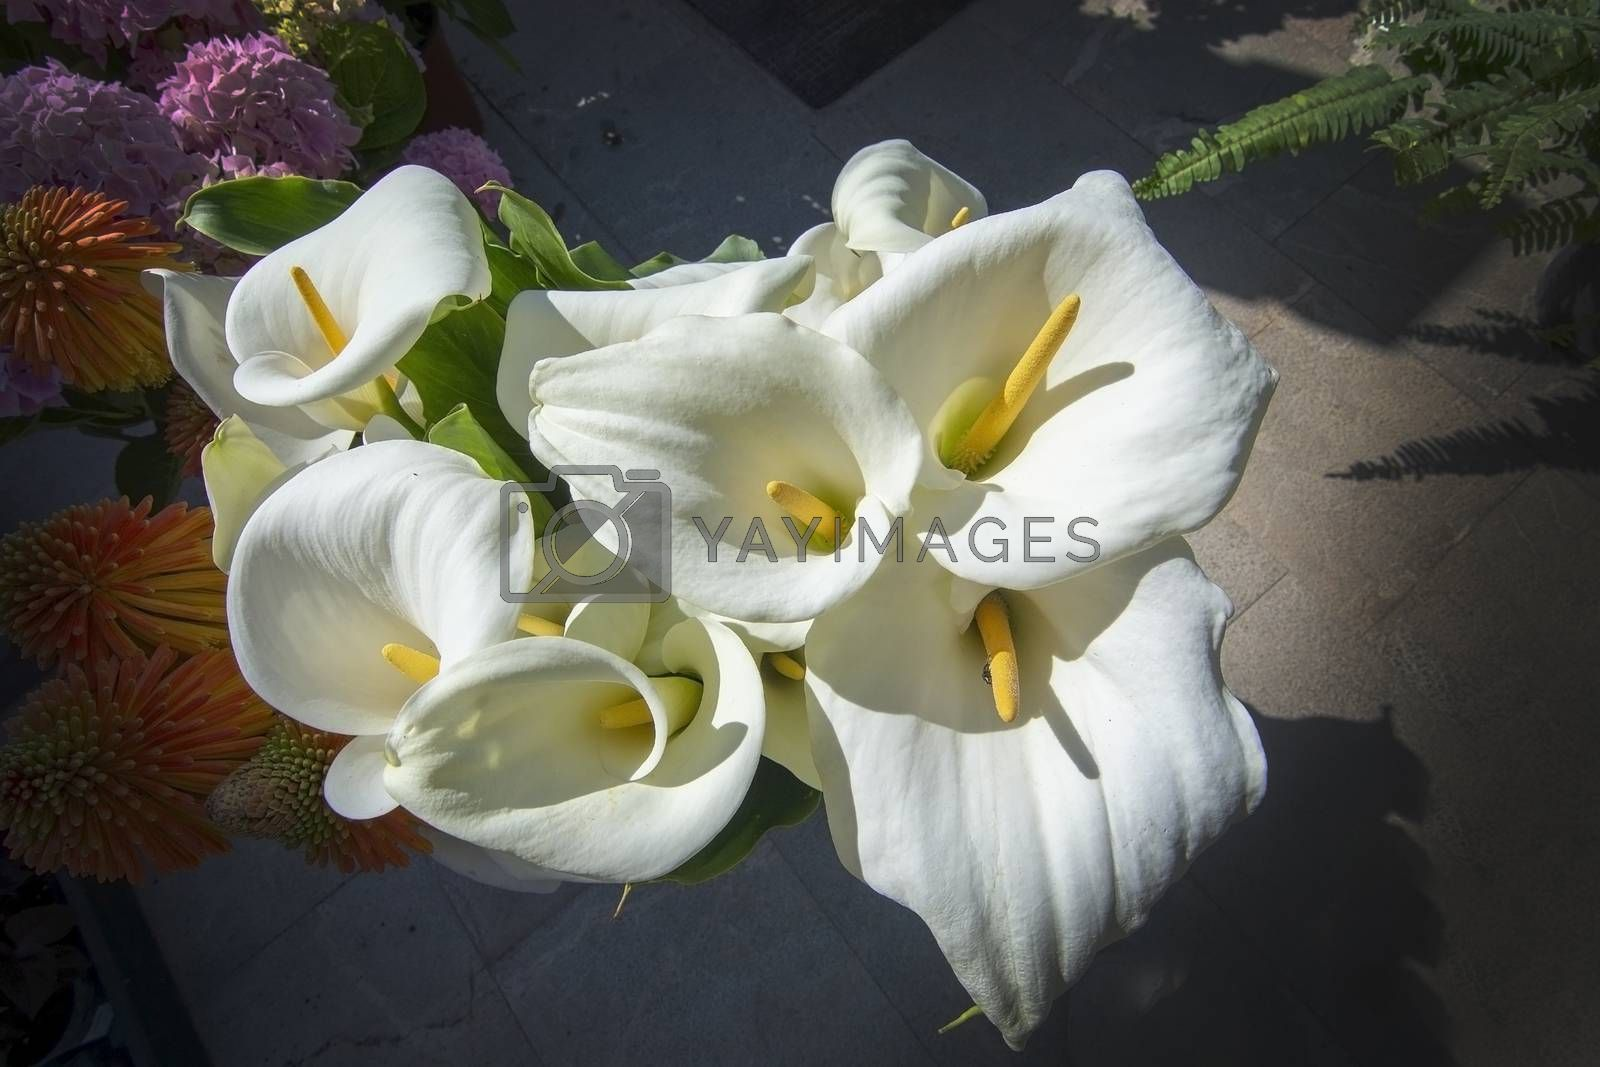 Beautiful white calla lilies closeup with petals and pistils in sunshine from above.